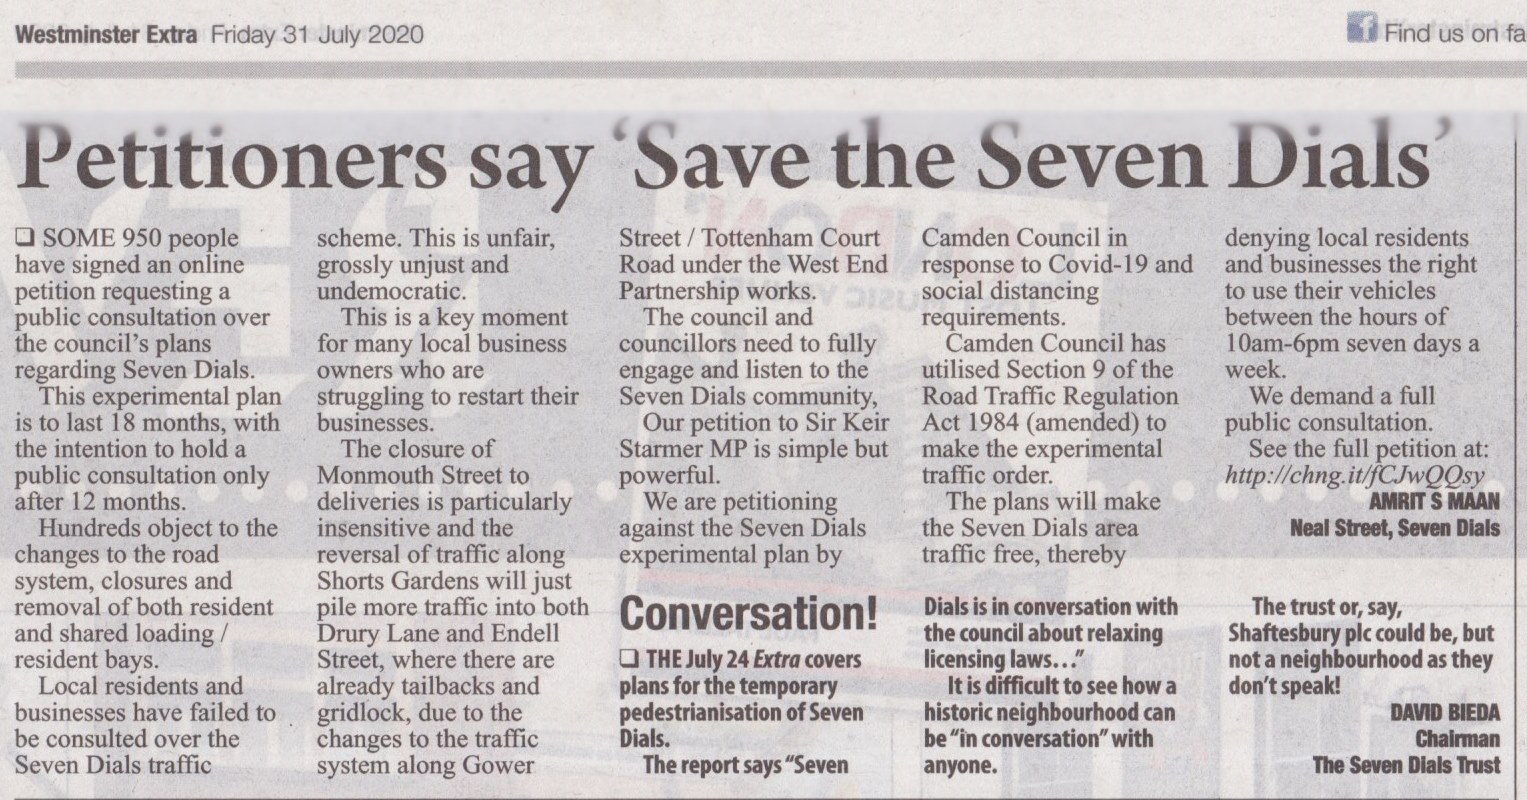 31 July 2020 – Westminster Extra: Petitioners say 'Save the Seven Dials'.